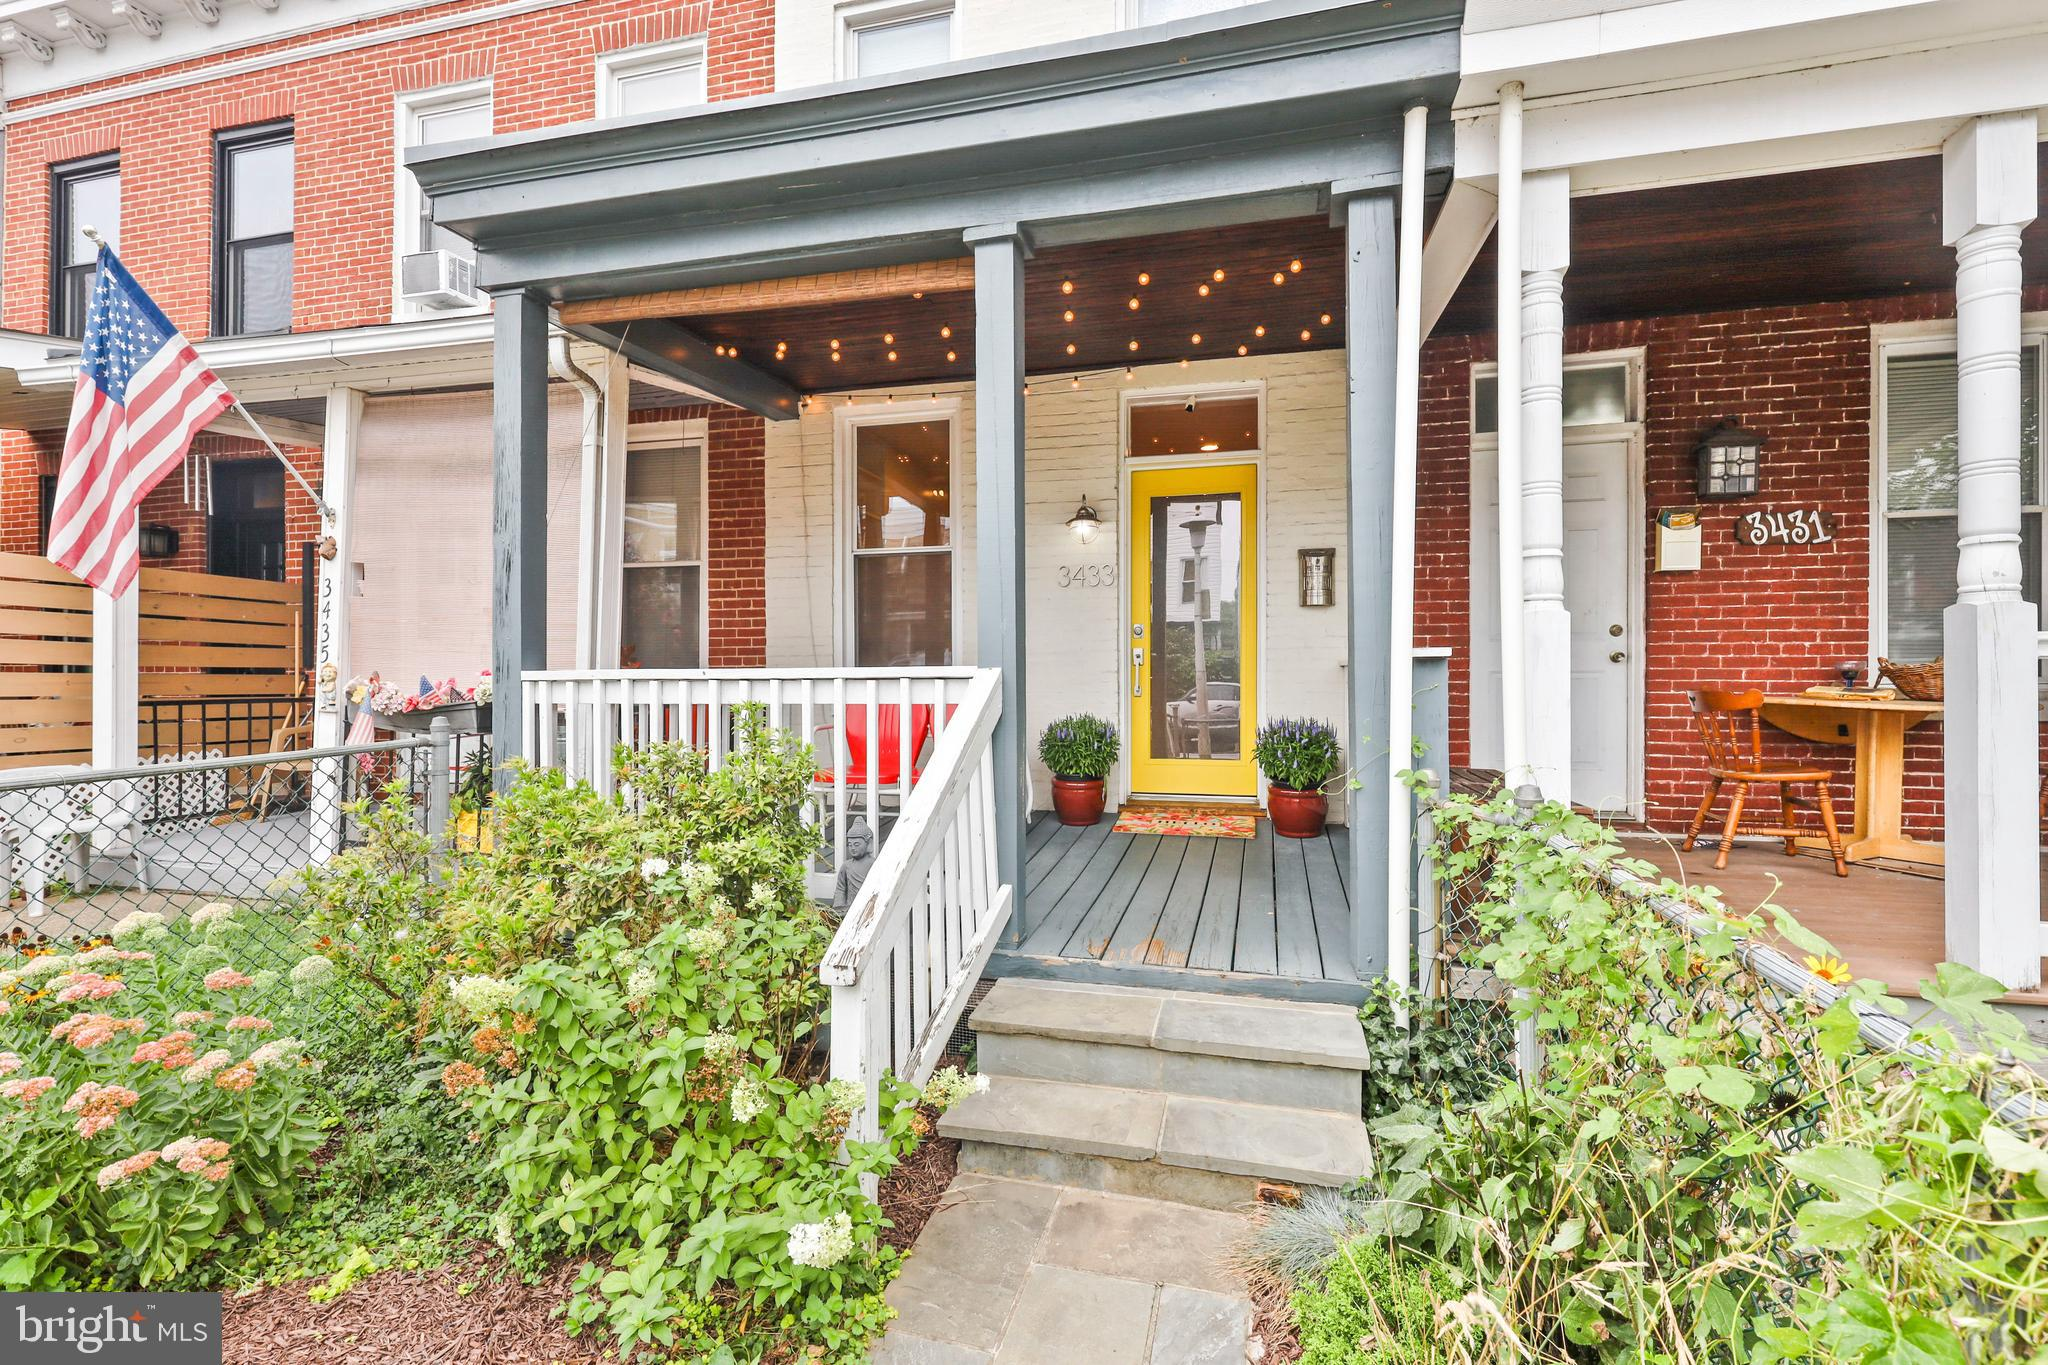 """Location, location, location! This super cute 2BR/1.5BA renovated row home is 1.5 blocks from """"The Ave"""".  Hardwood floors, CAC, adorable front porch and fenced front and rear patio, built in shelving, main level W/D, and separate dining area. Walk to shops, restaurants, nightlife, green space/park, and minutes to i83. Likely qualifies for Hopkins LNYW grant."""